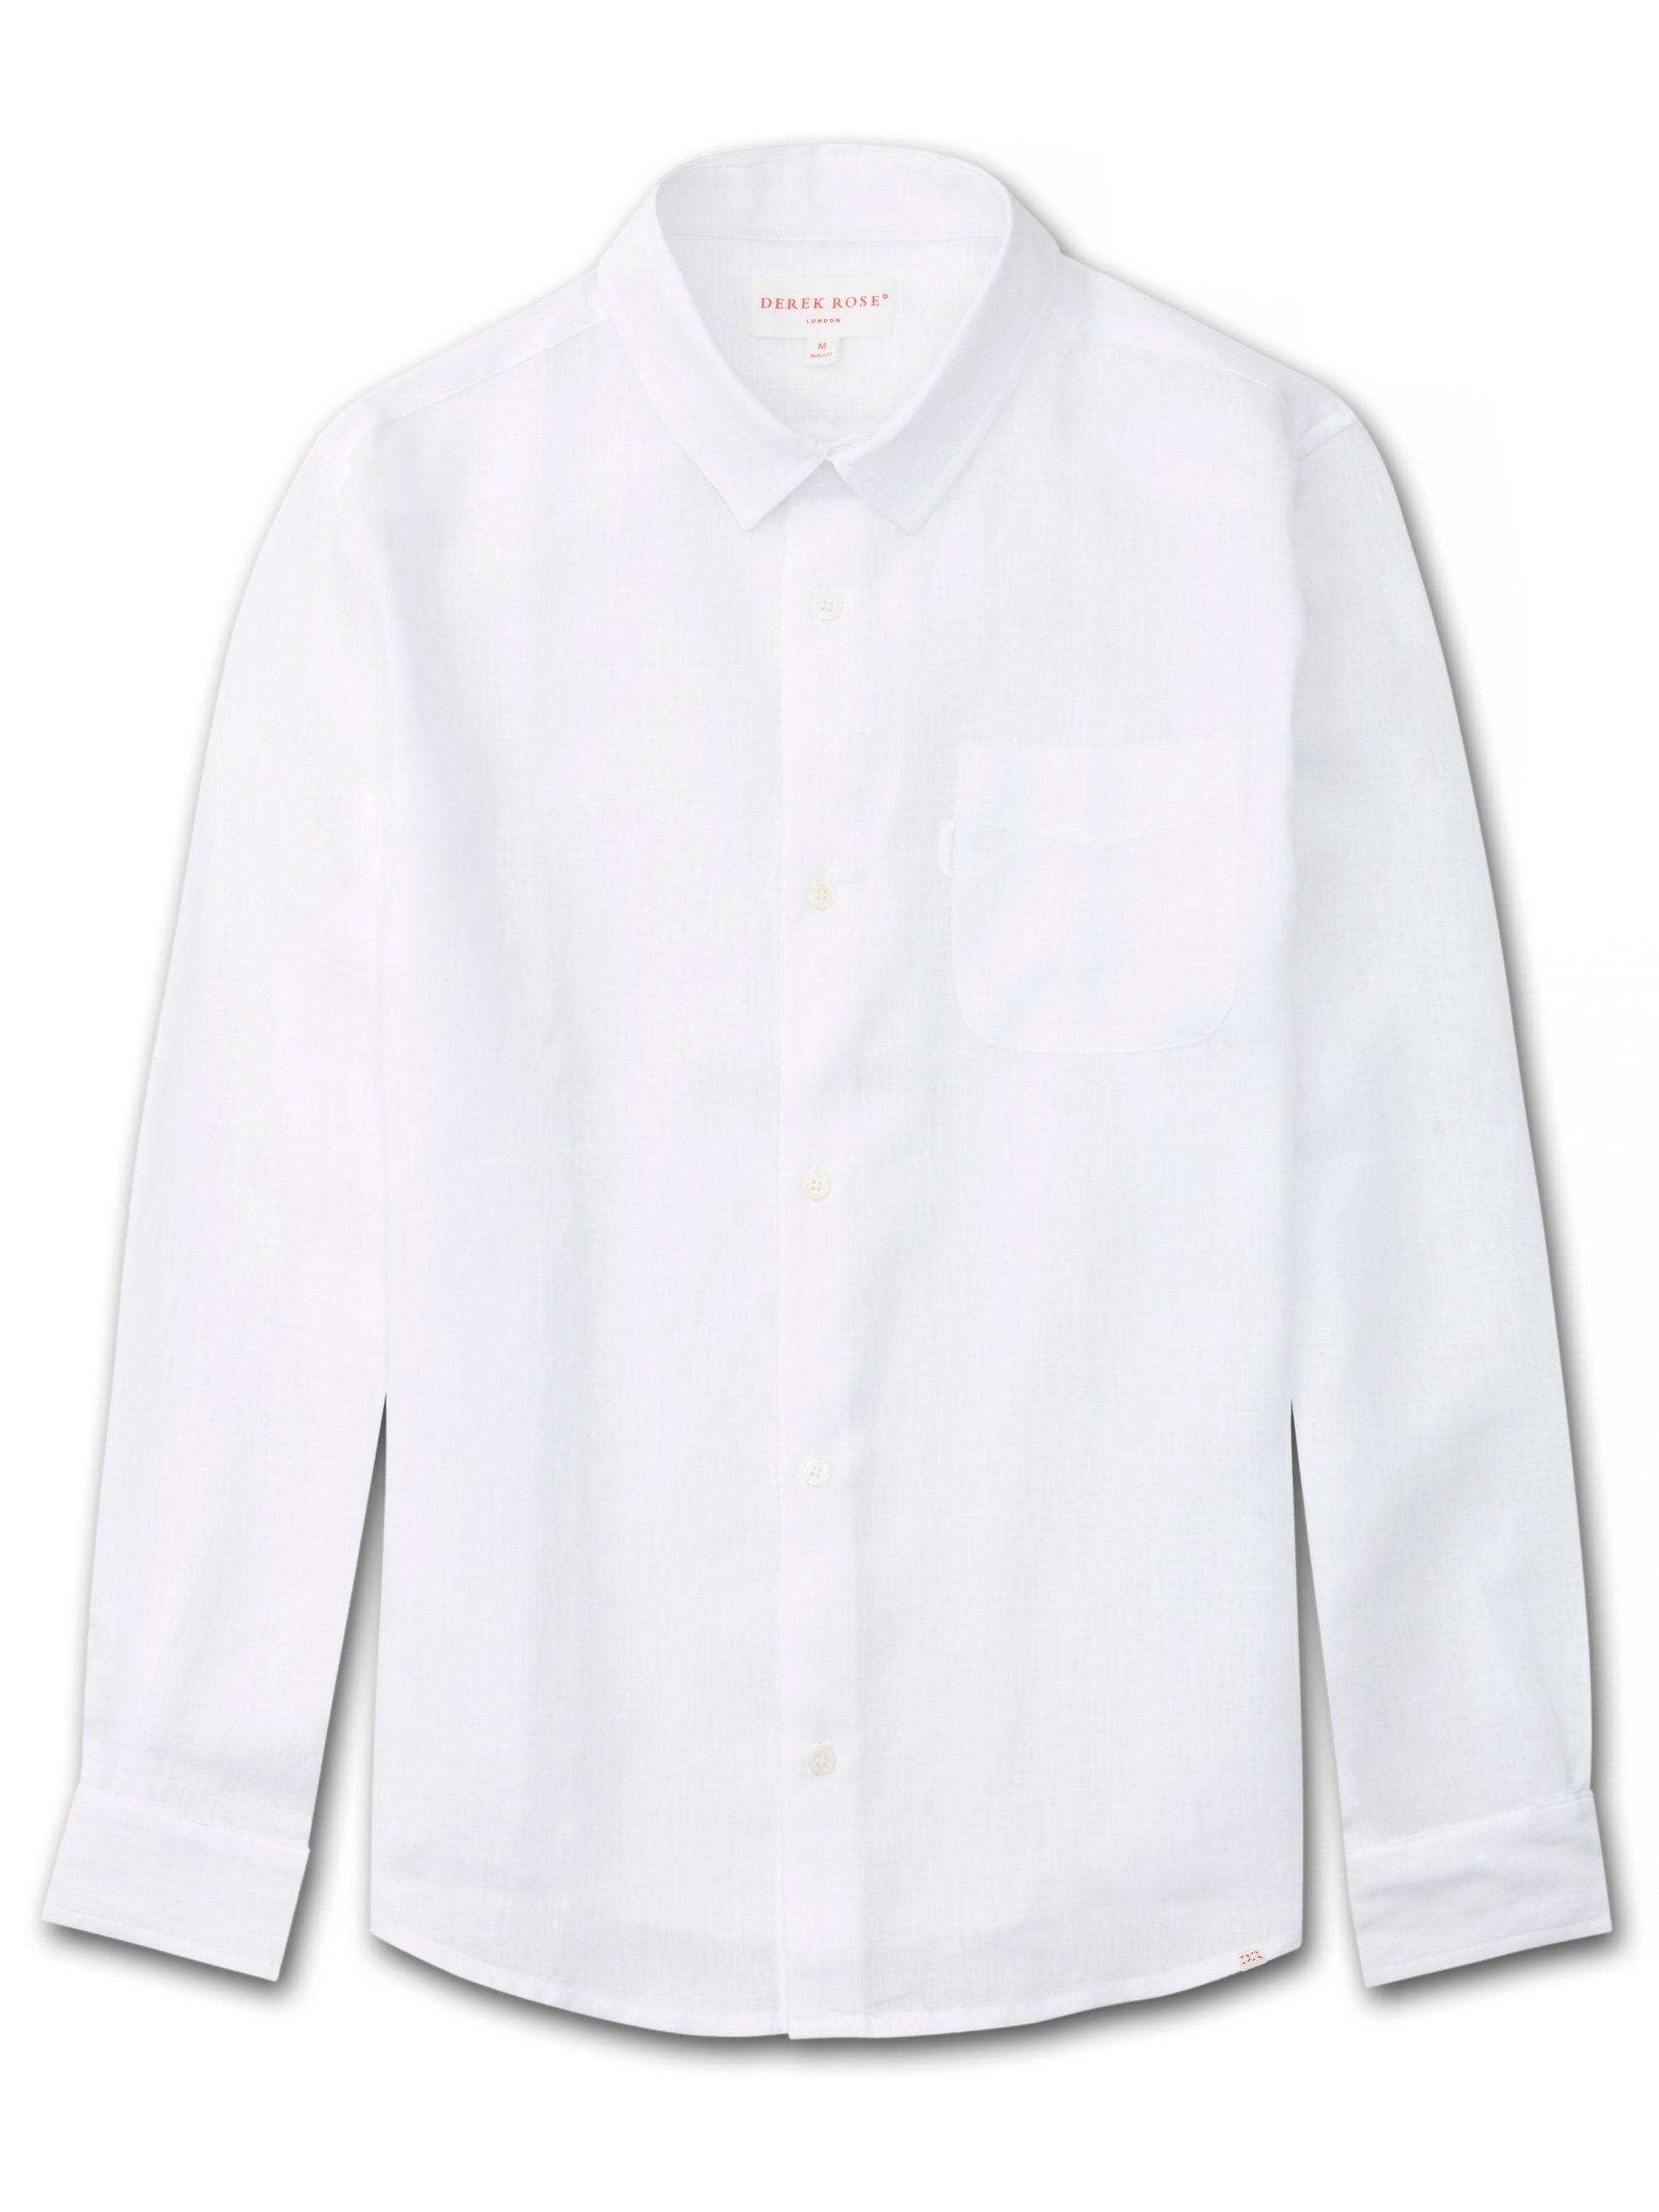 Men's Linen Shirt Monaco Pure Linen White